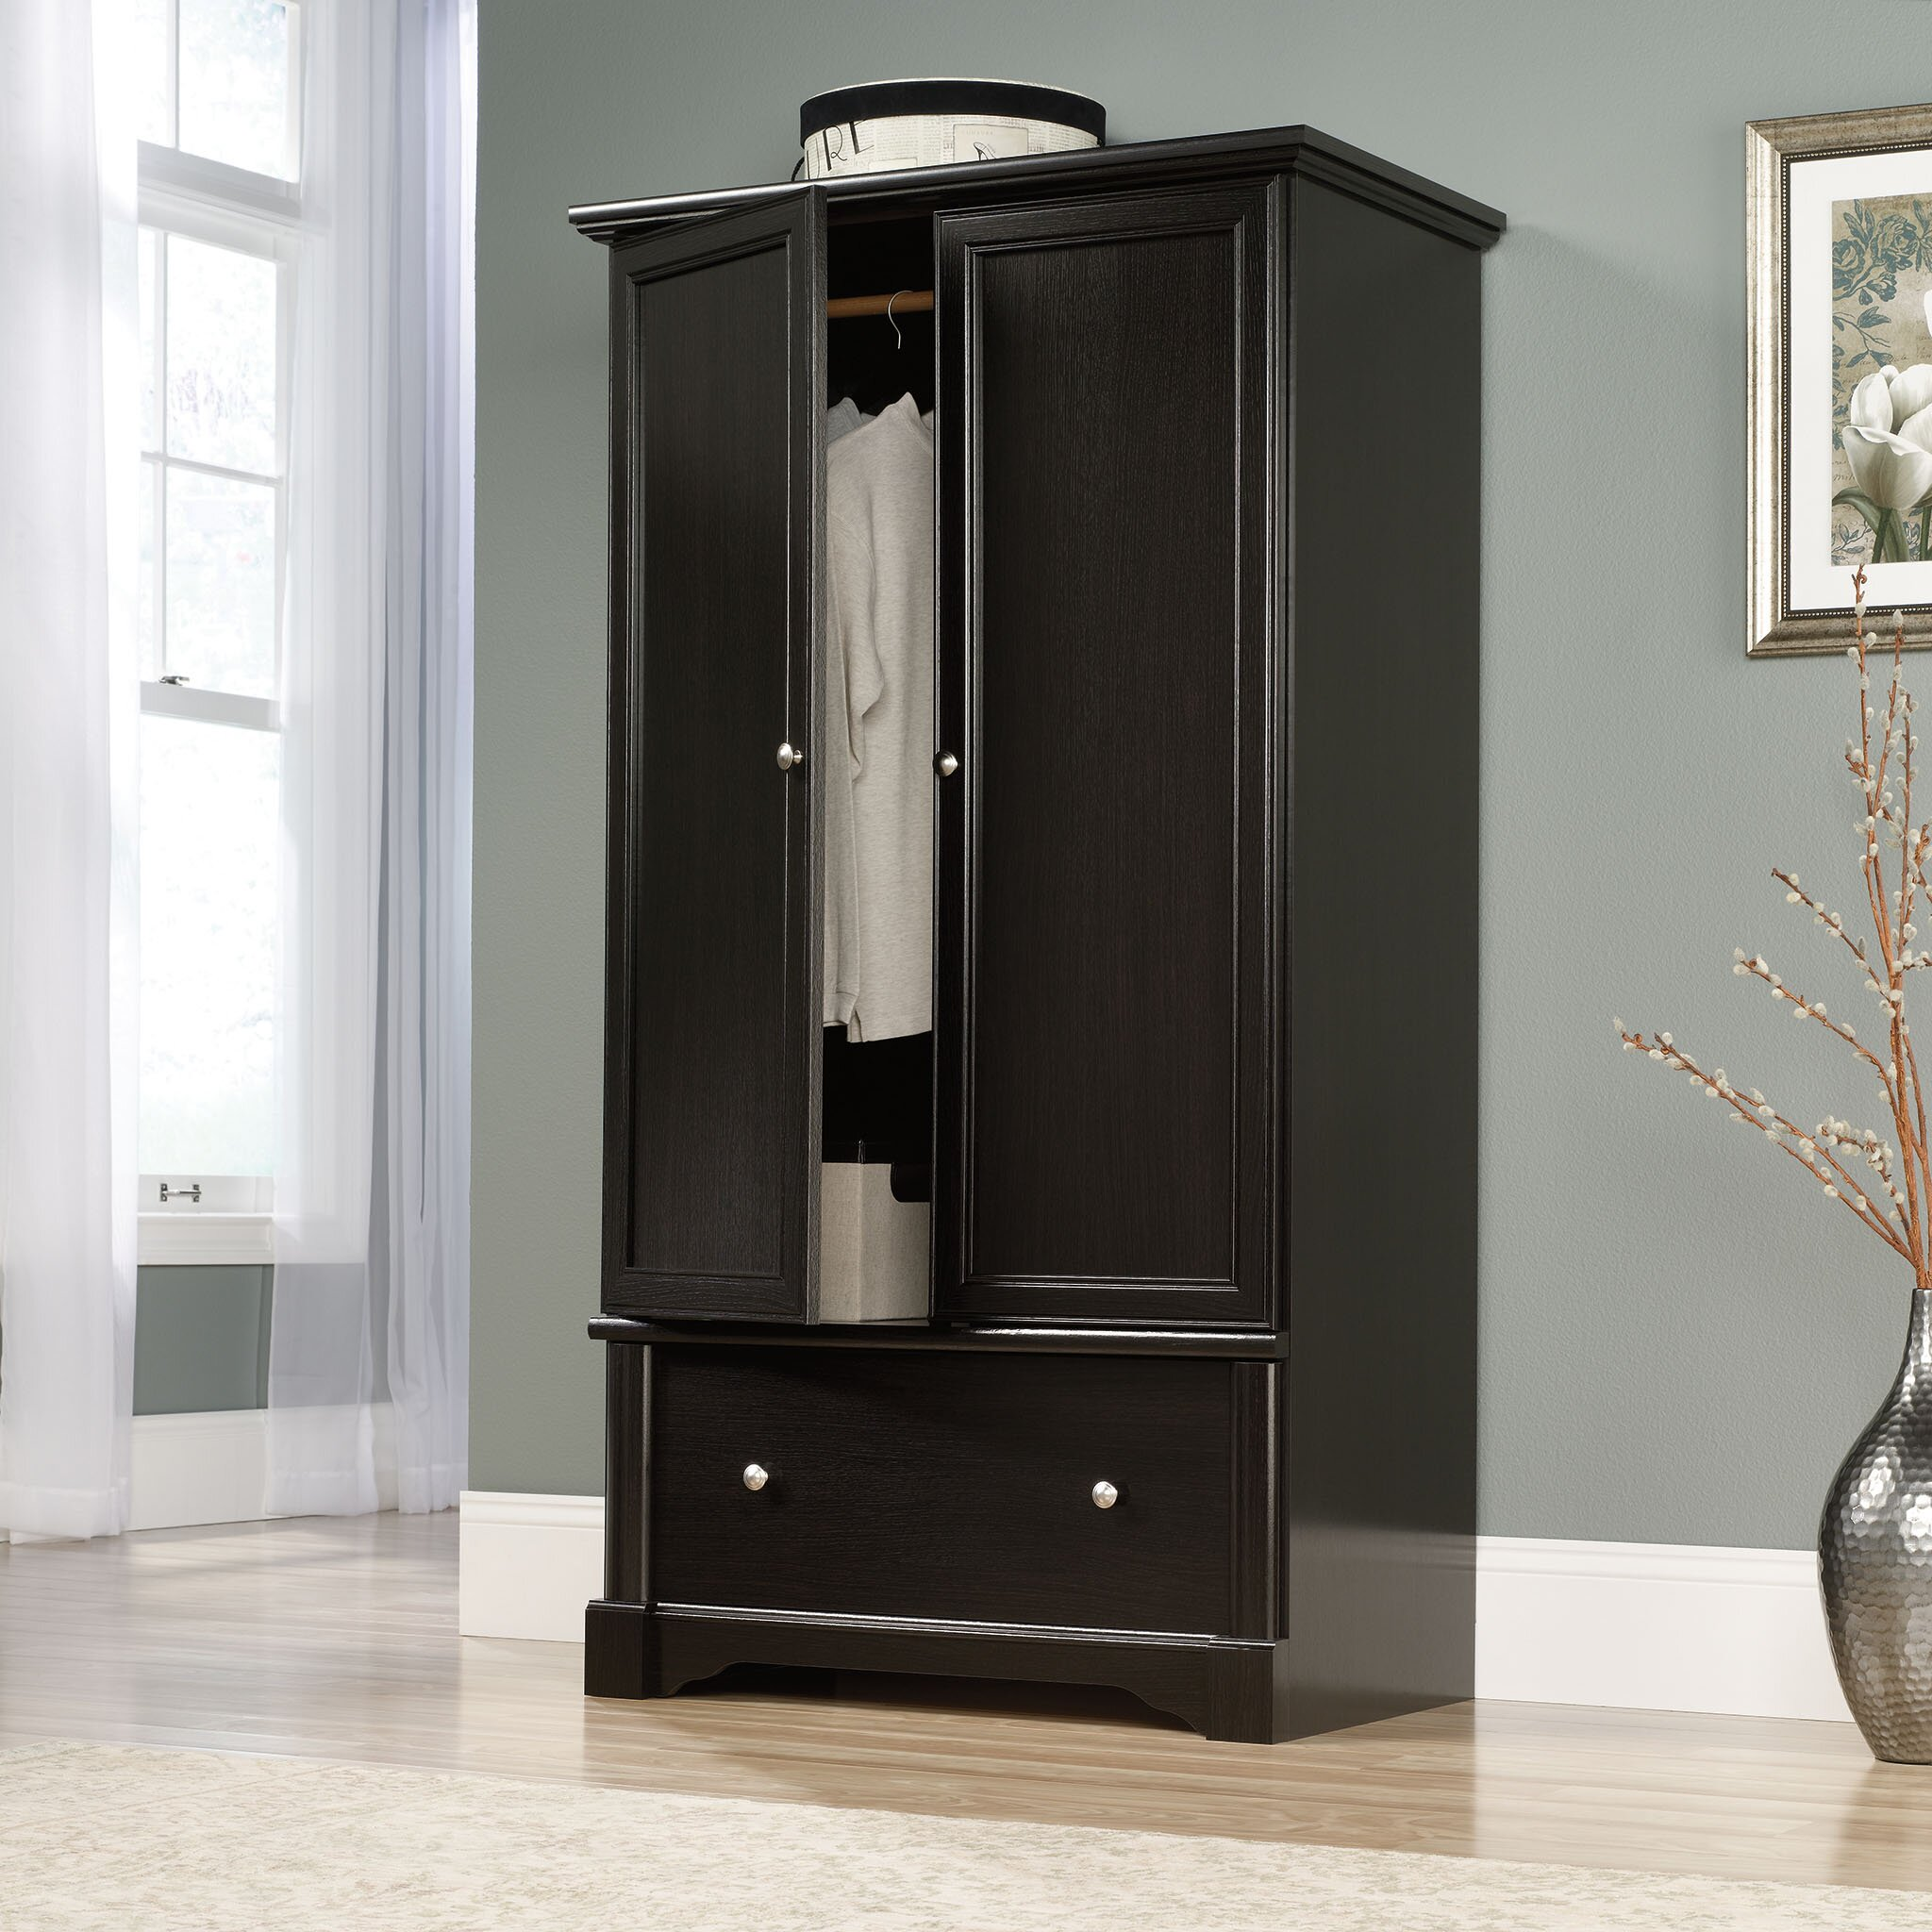 Bedroom Armoire: Darby Home Co Hennepin Armoire & Reviews